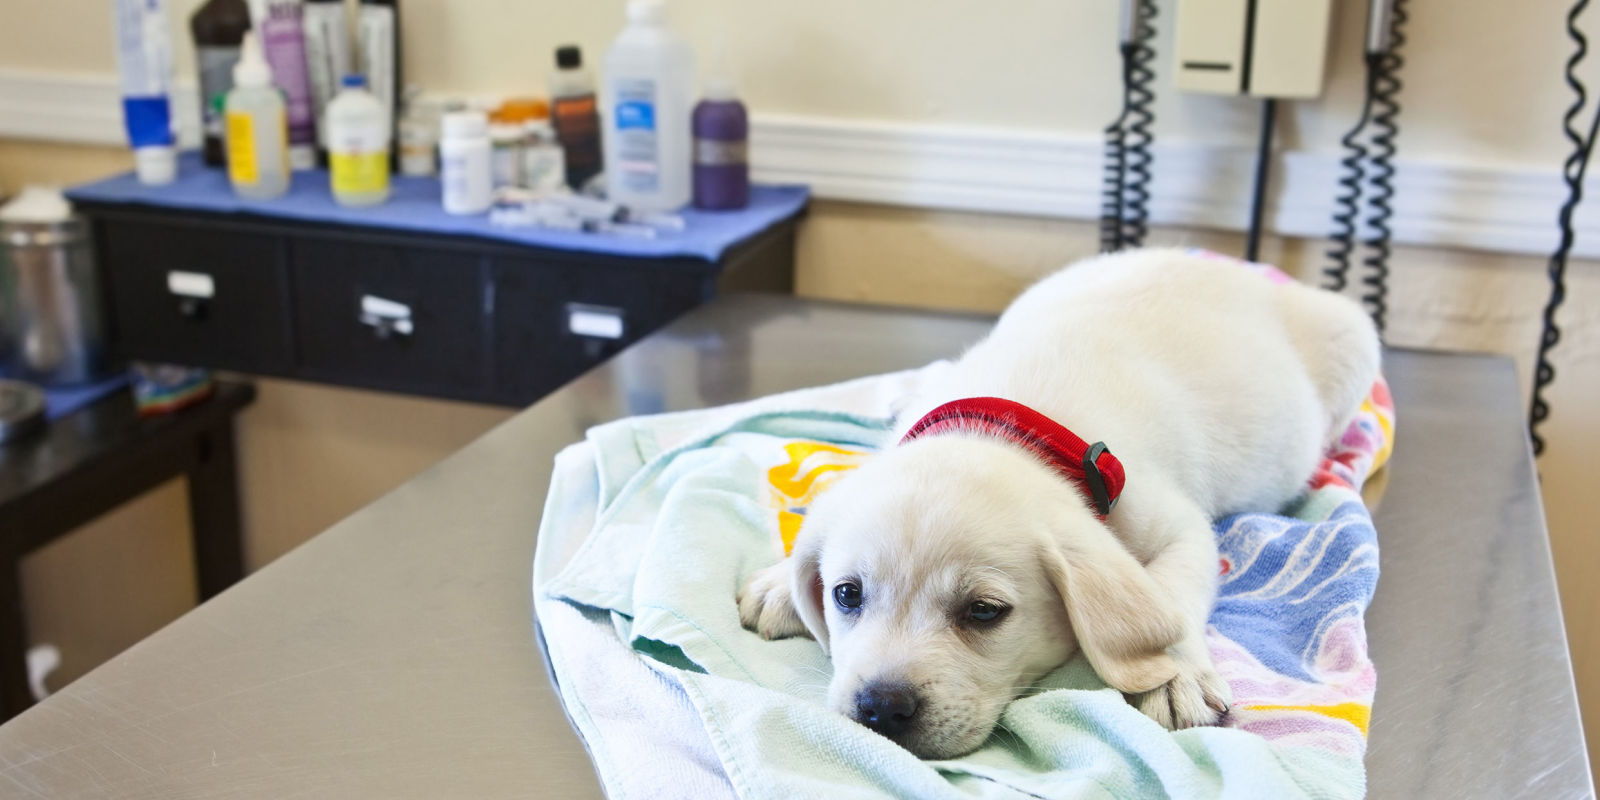 The Dog Flu Is Spreading Across the Country for the First Time In Years